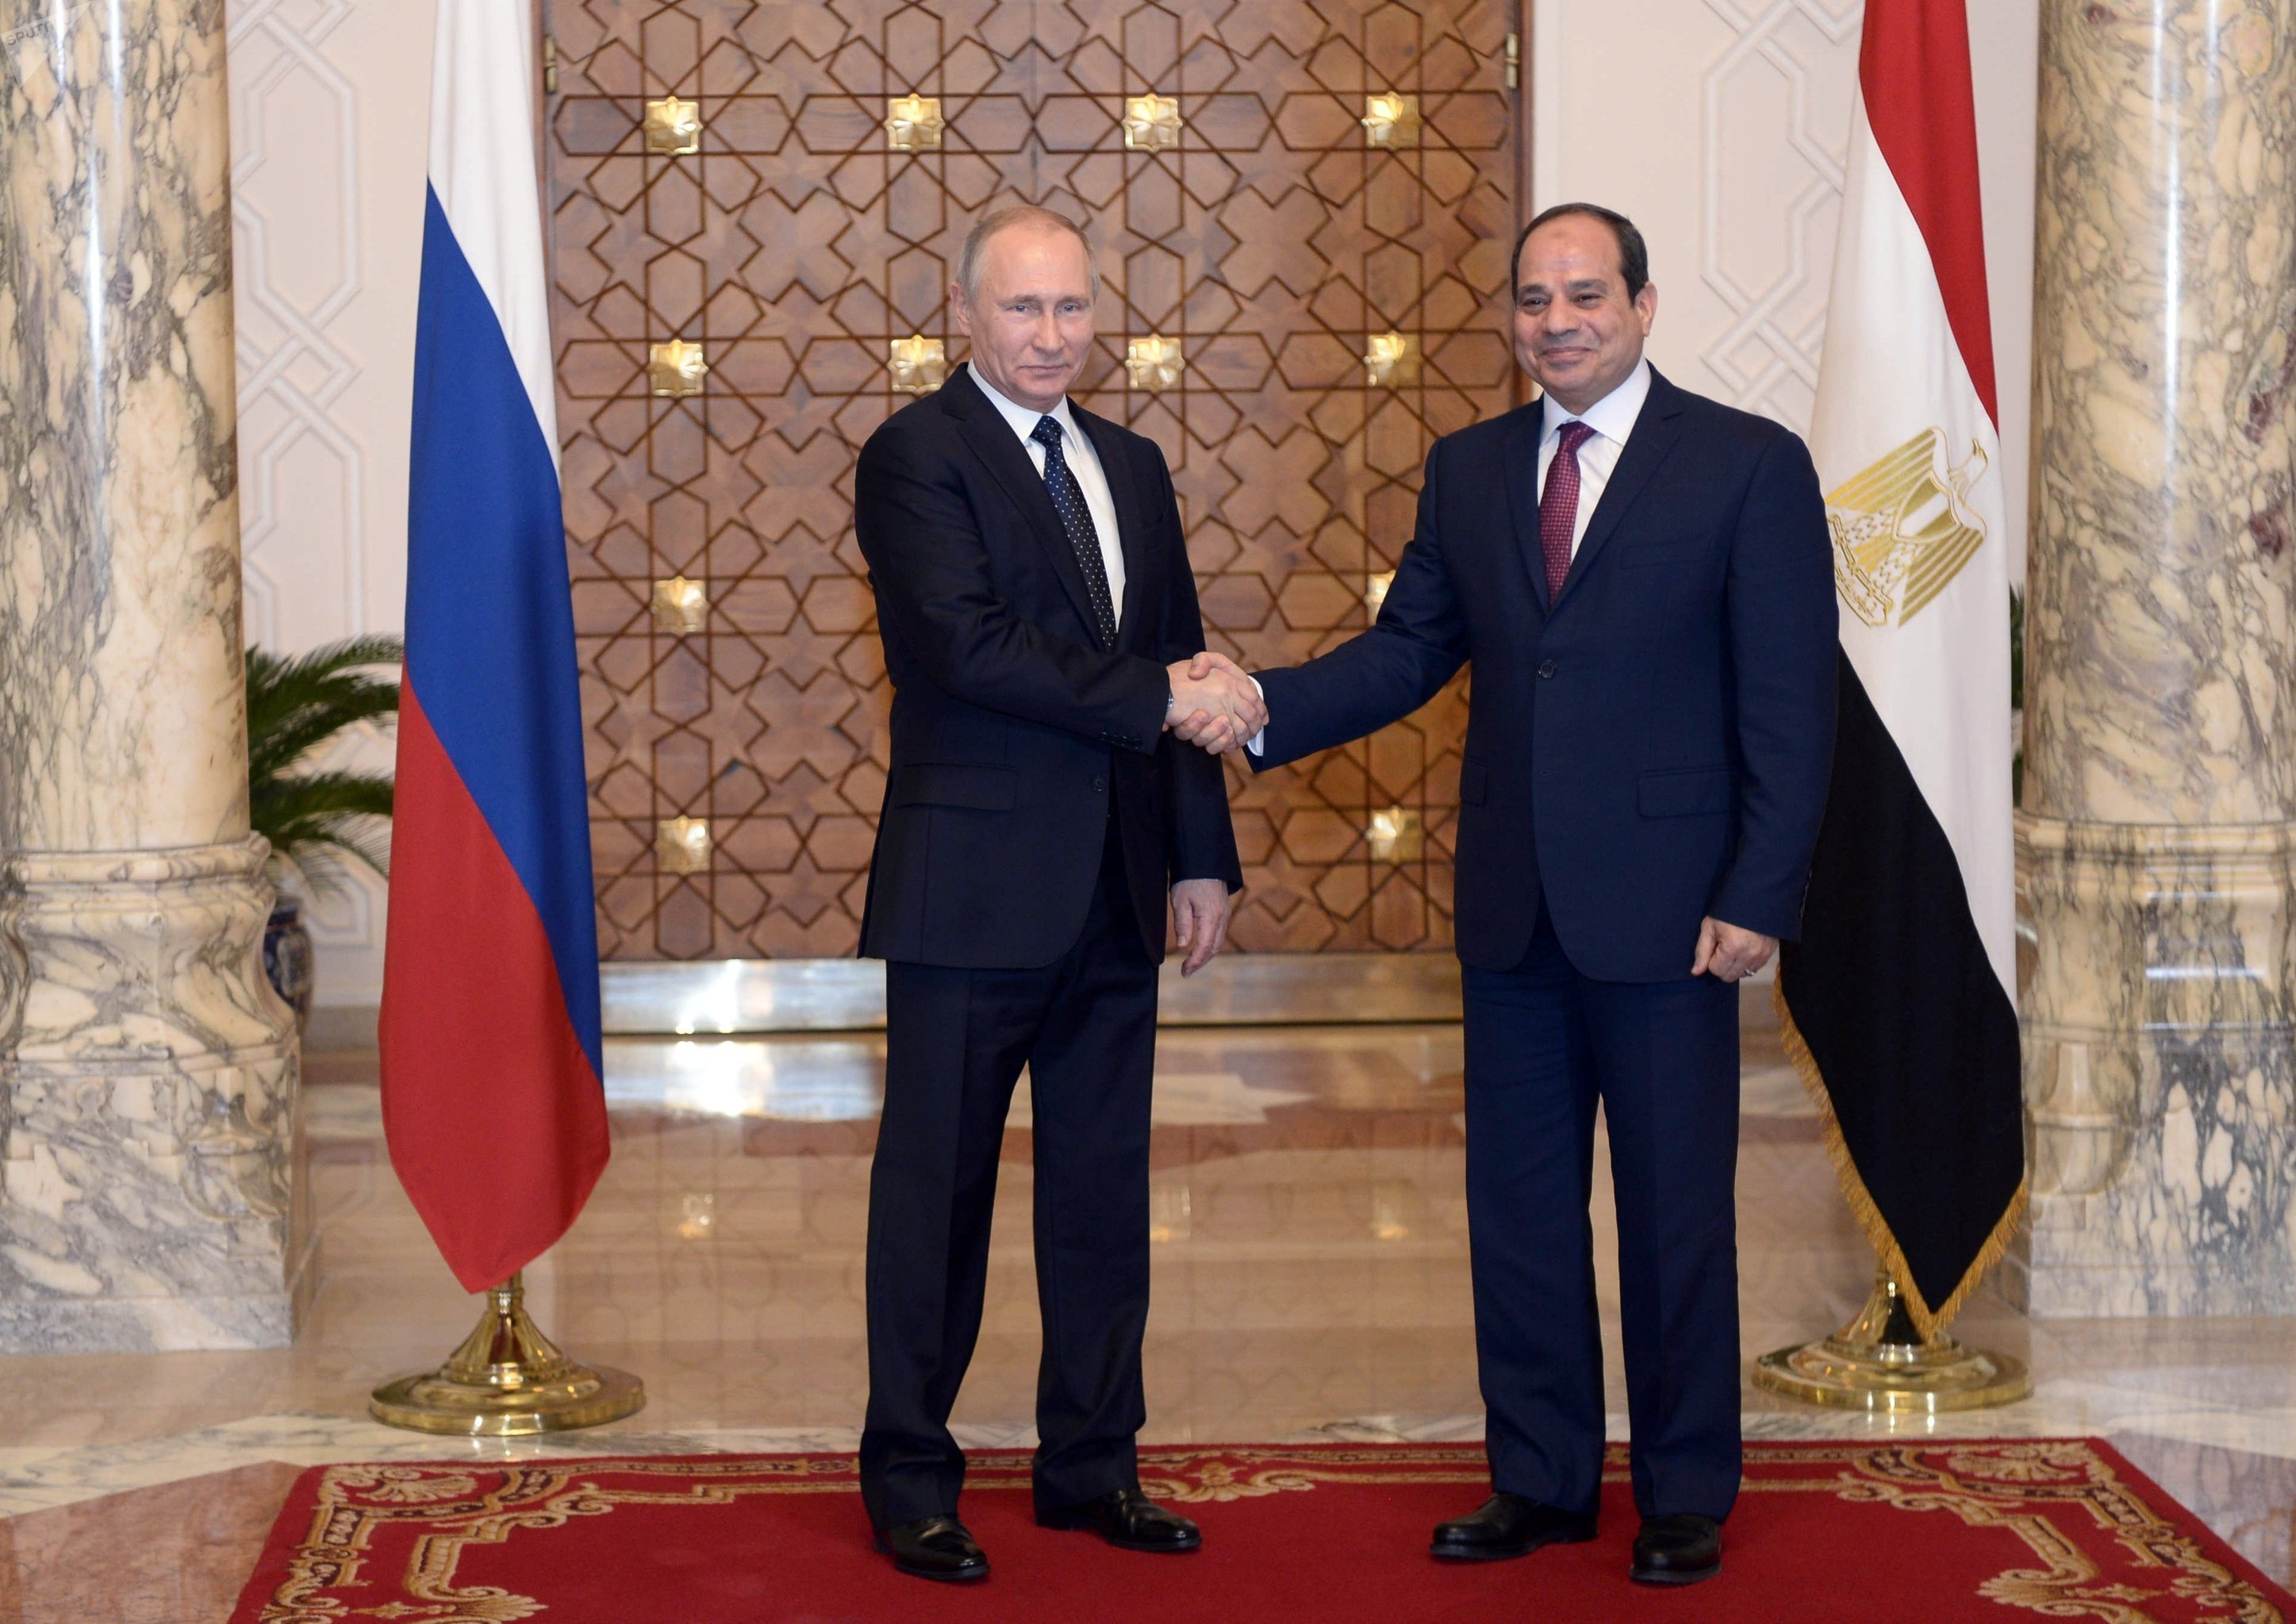 President of the Arab Republic of Egypt Abdel Fattah el-Sisi (right) and President of the Russian Federation Vladimir Putin at the meeting in Cairo